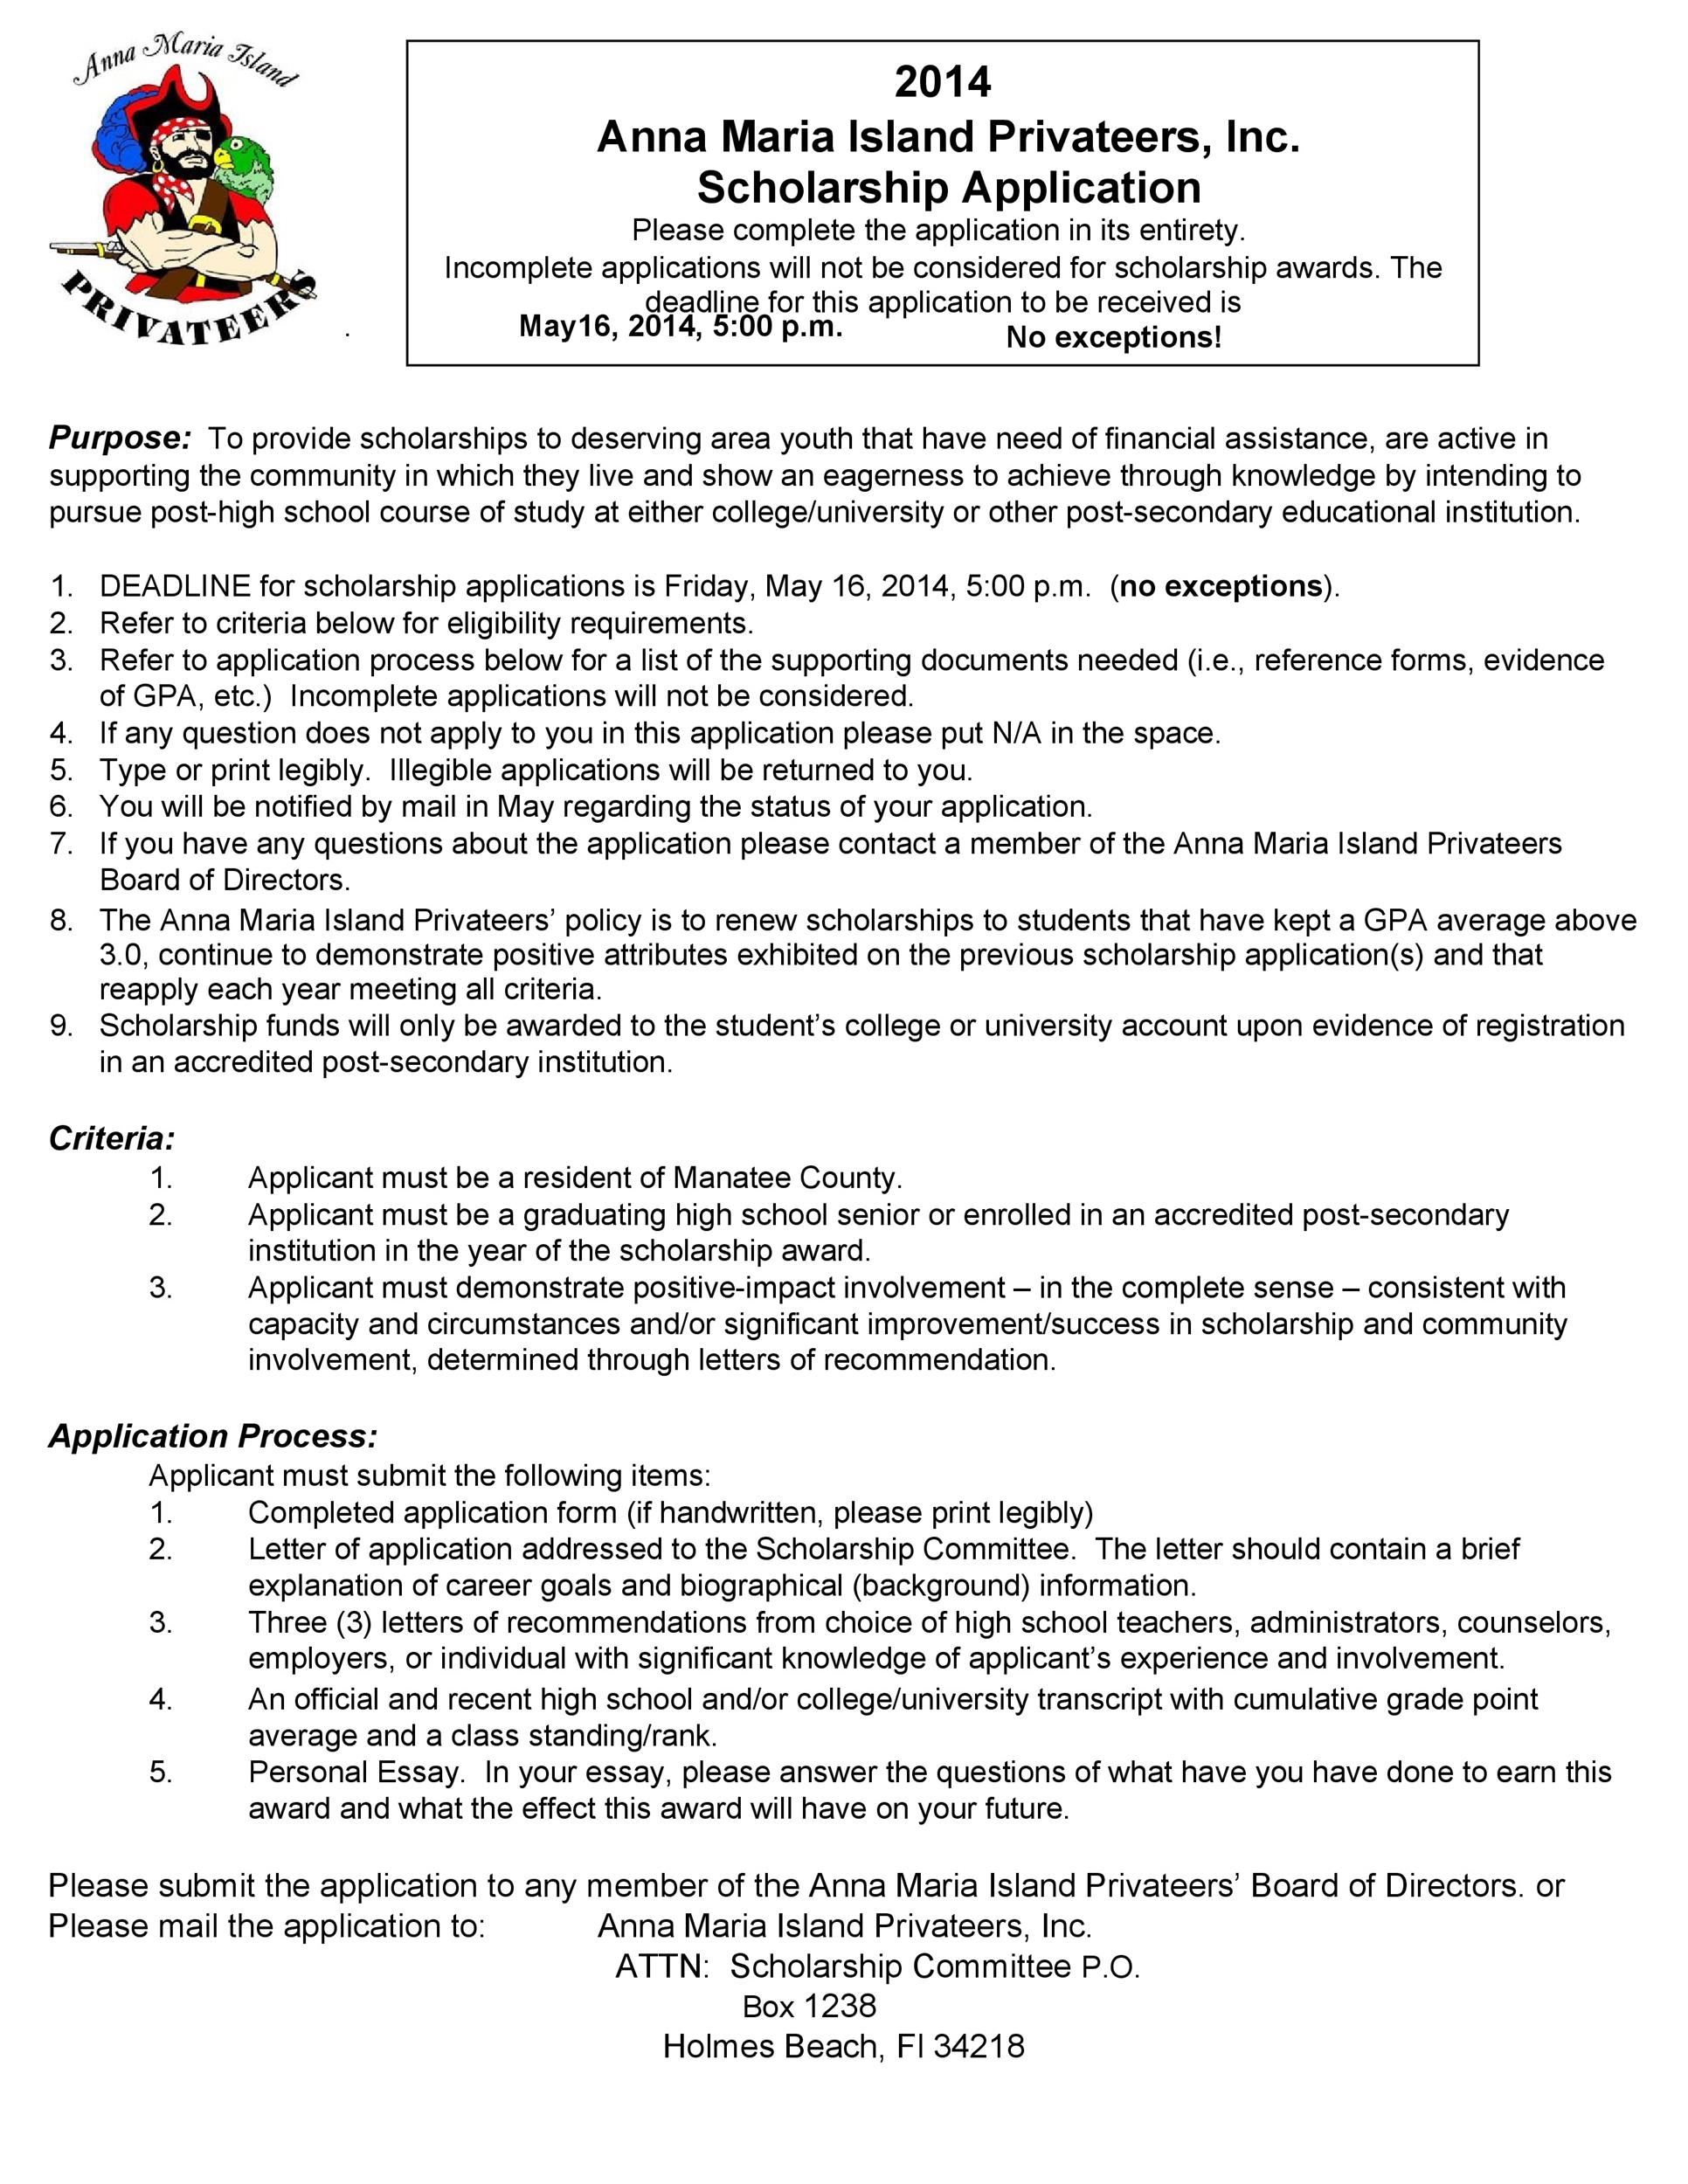 Free Scholarship Application Template 26